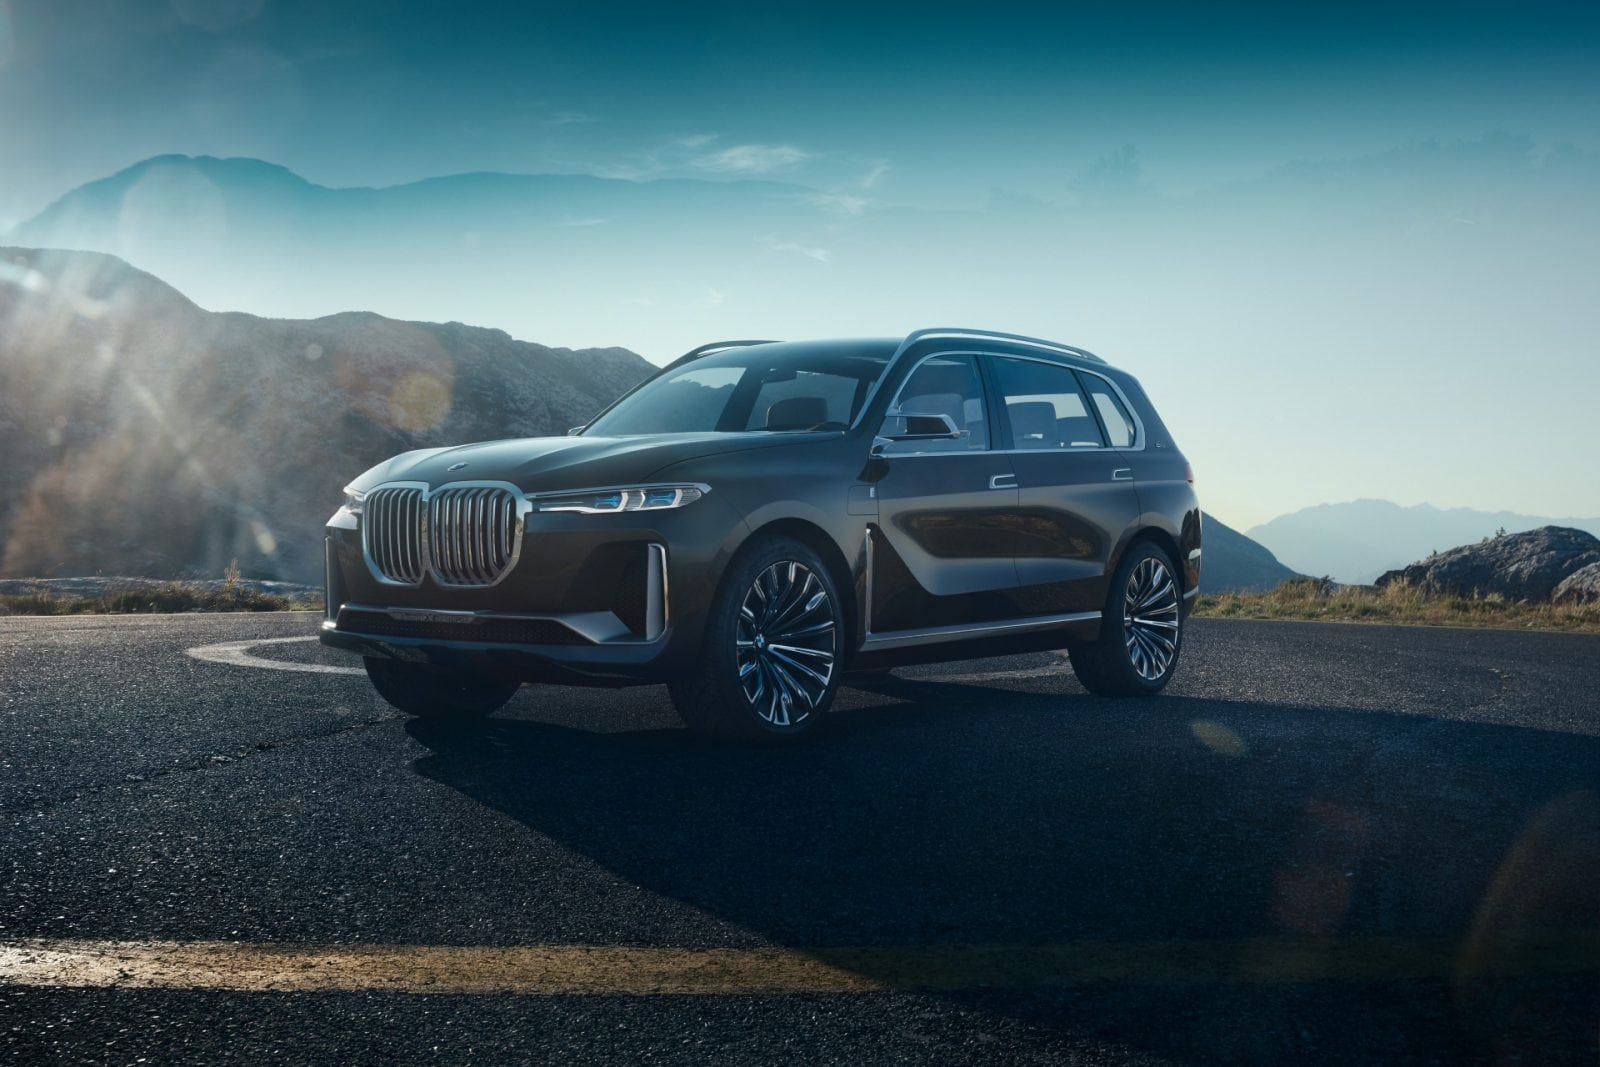 BMW Concept X7 iPerformance 2017 Exterior